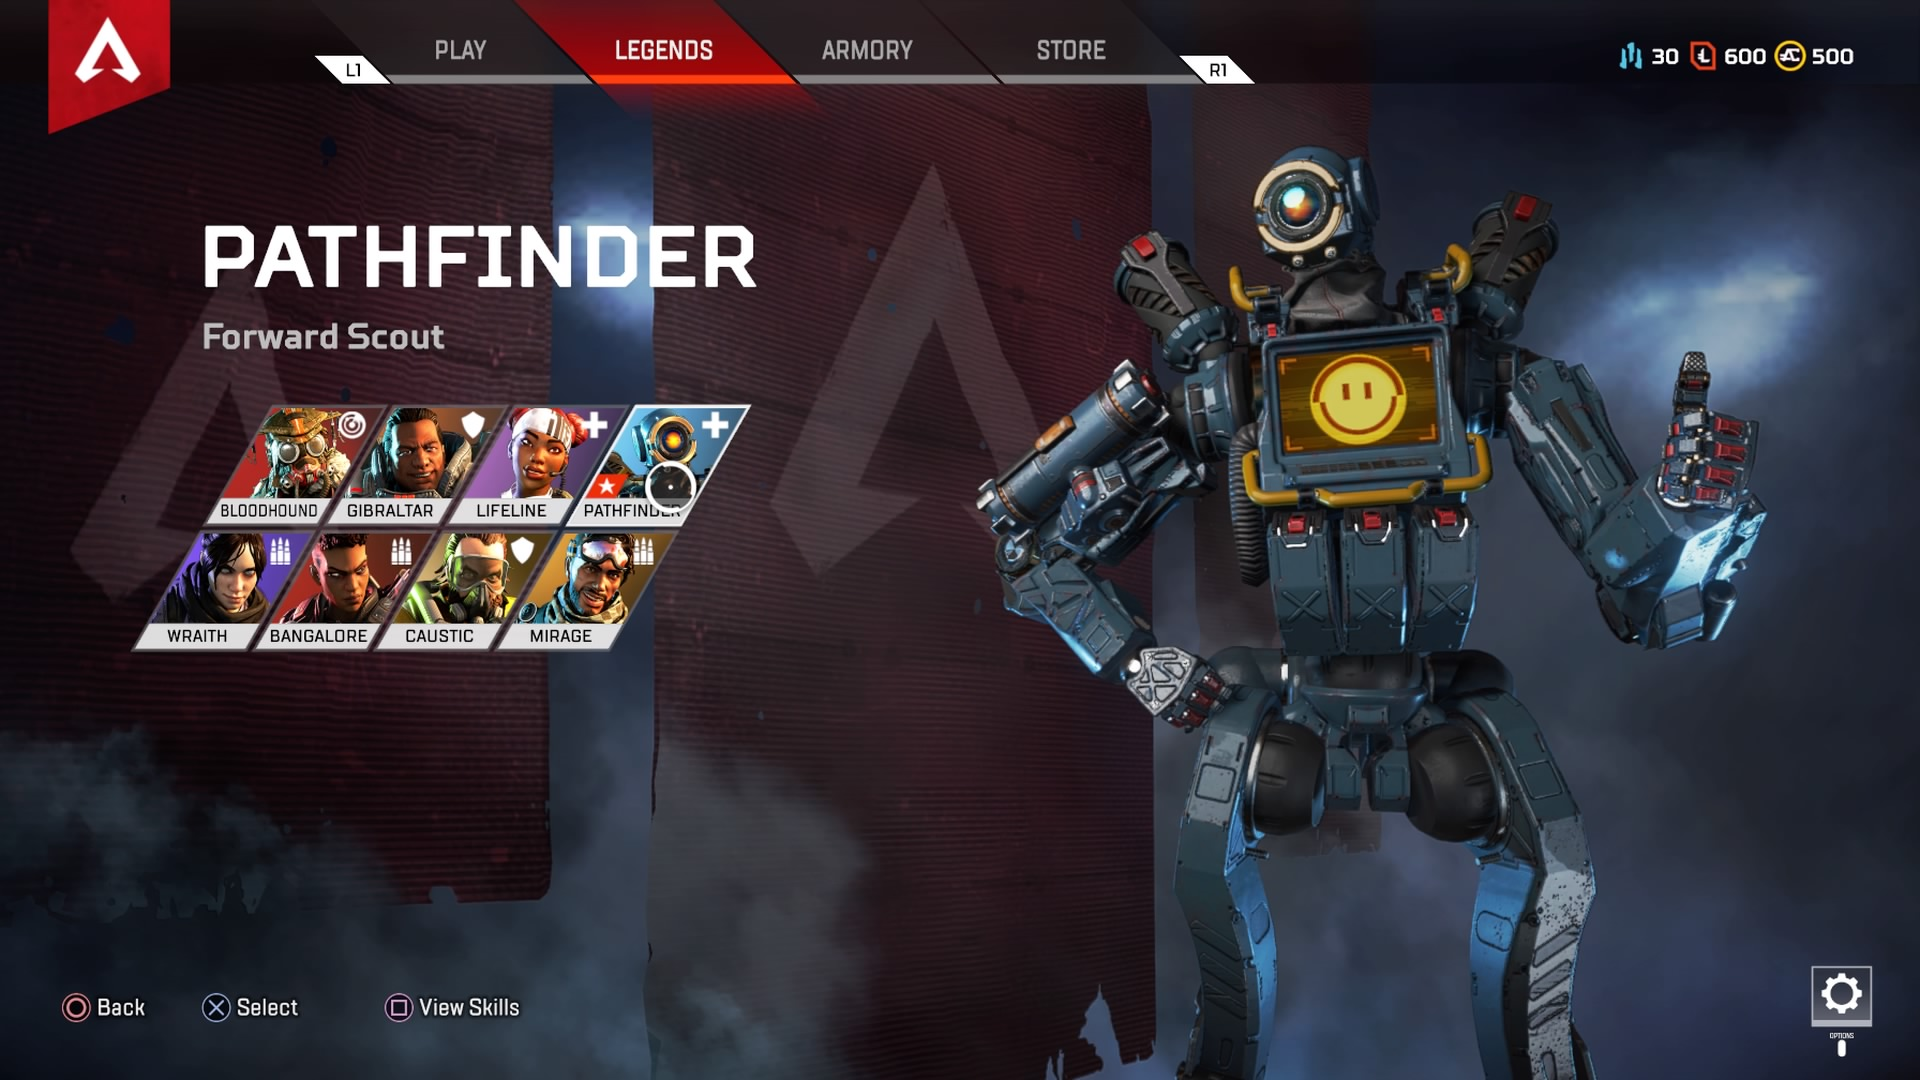 EA wants to bring Apex Legends to mobile - The Verge